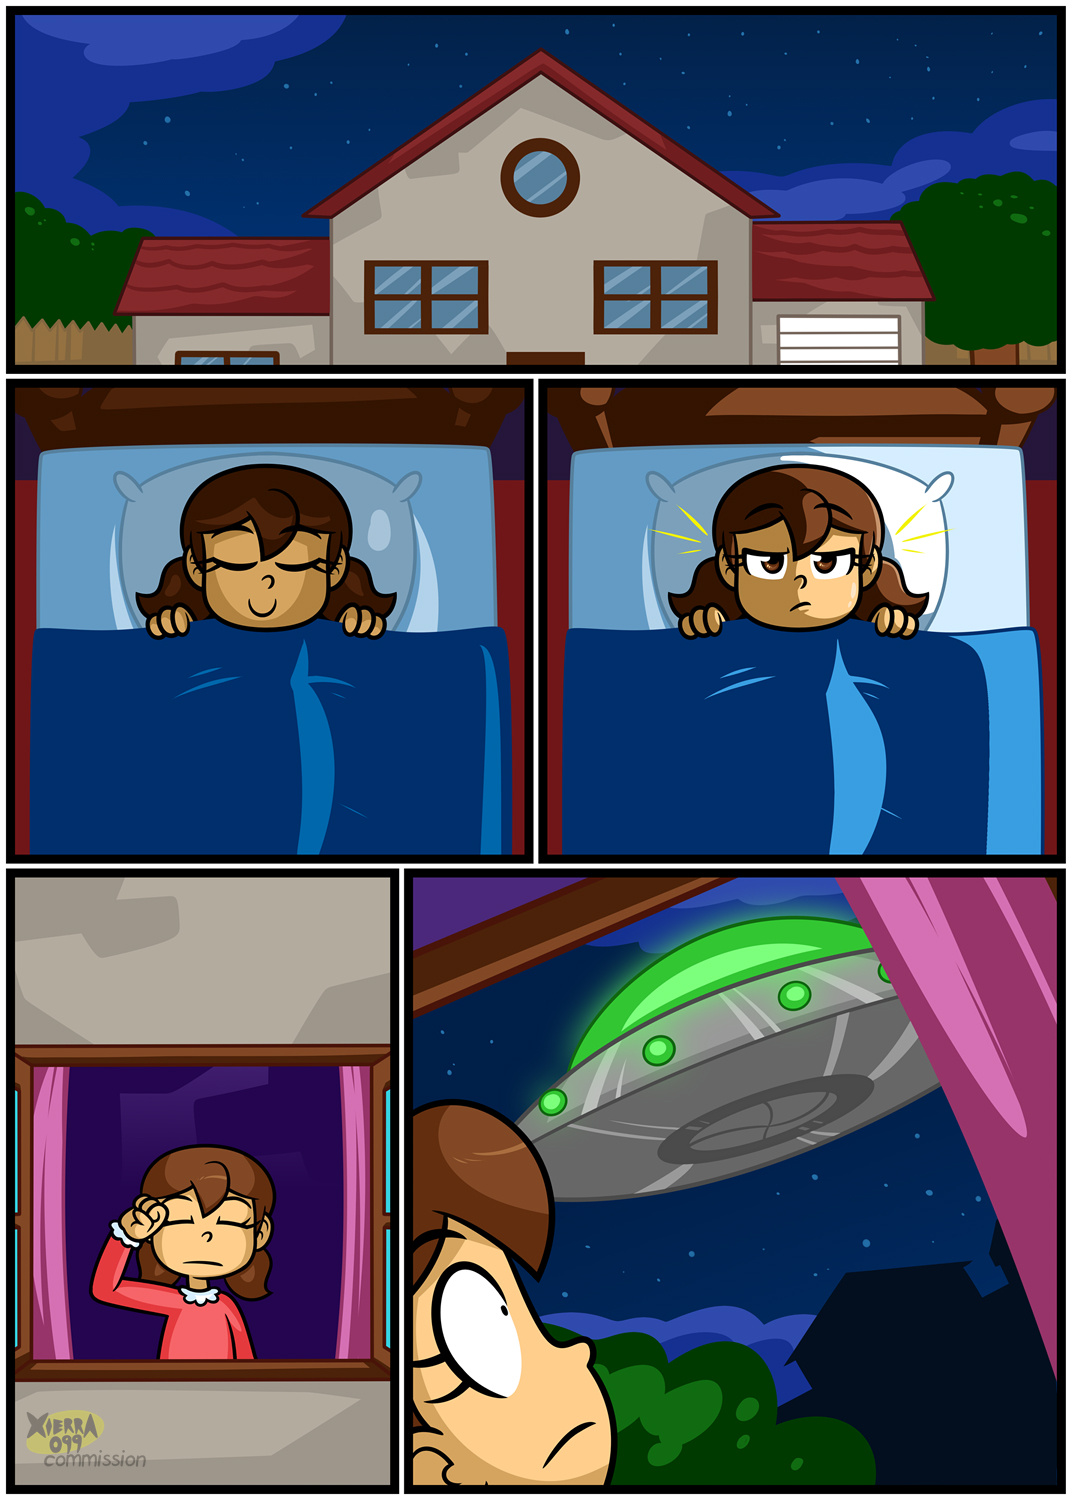 Alien Experience porn comics Aliens, Anal Sex, Kidnapping, Lolicon, Rape, Sex Toys